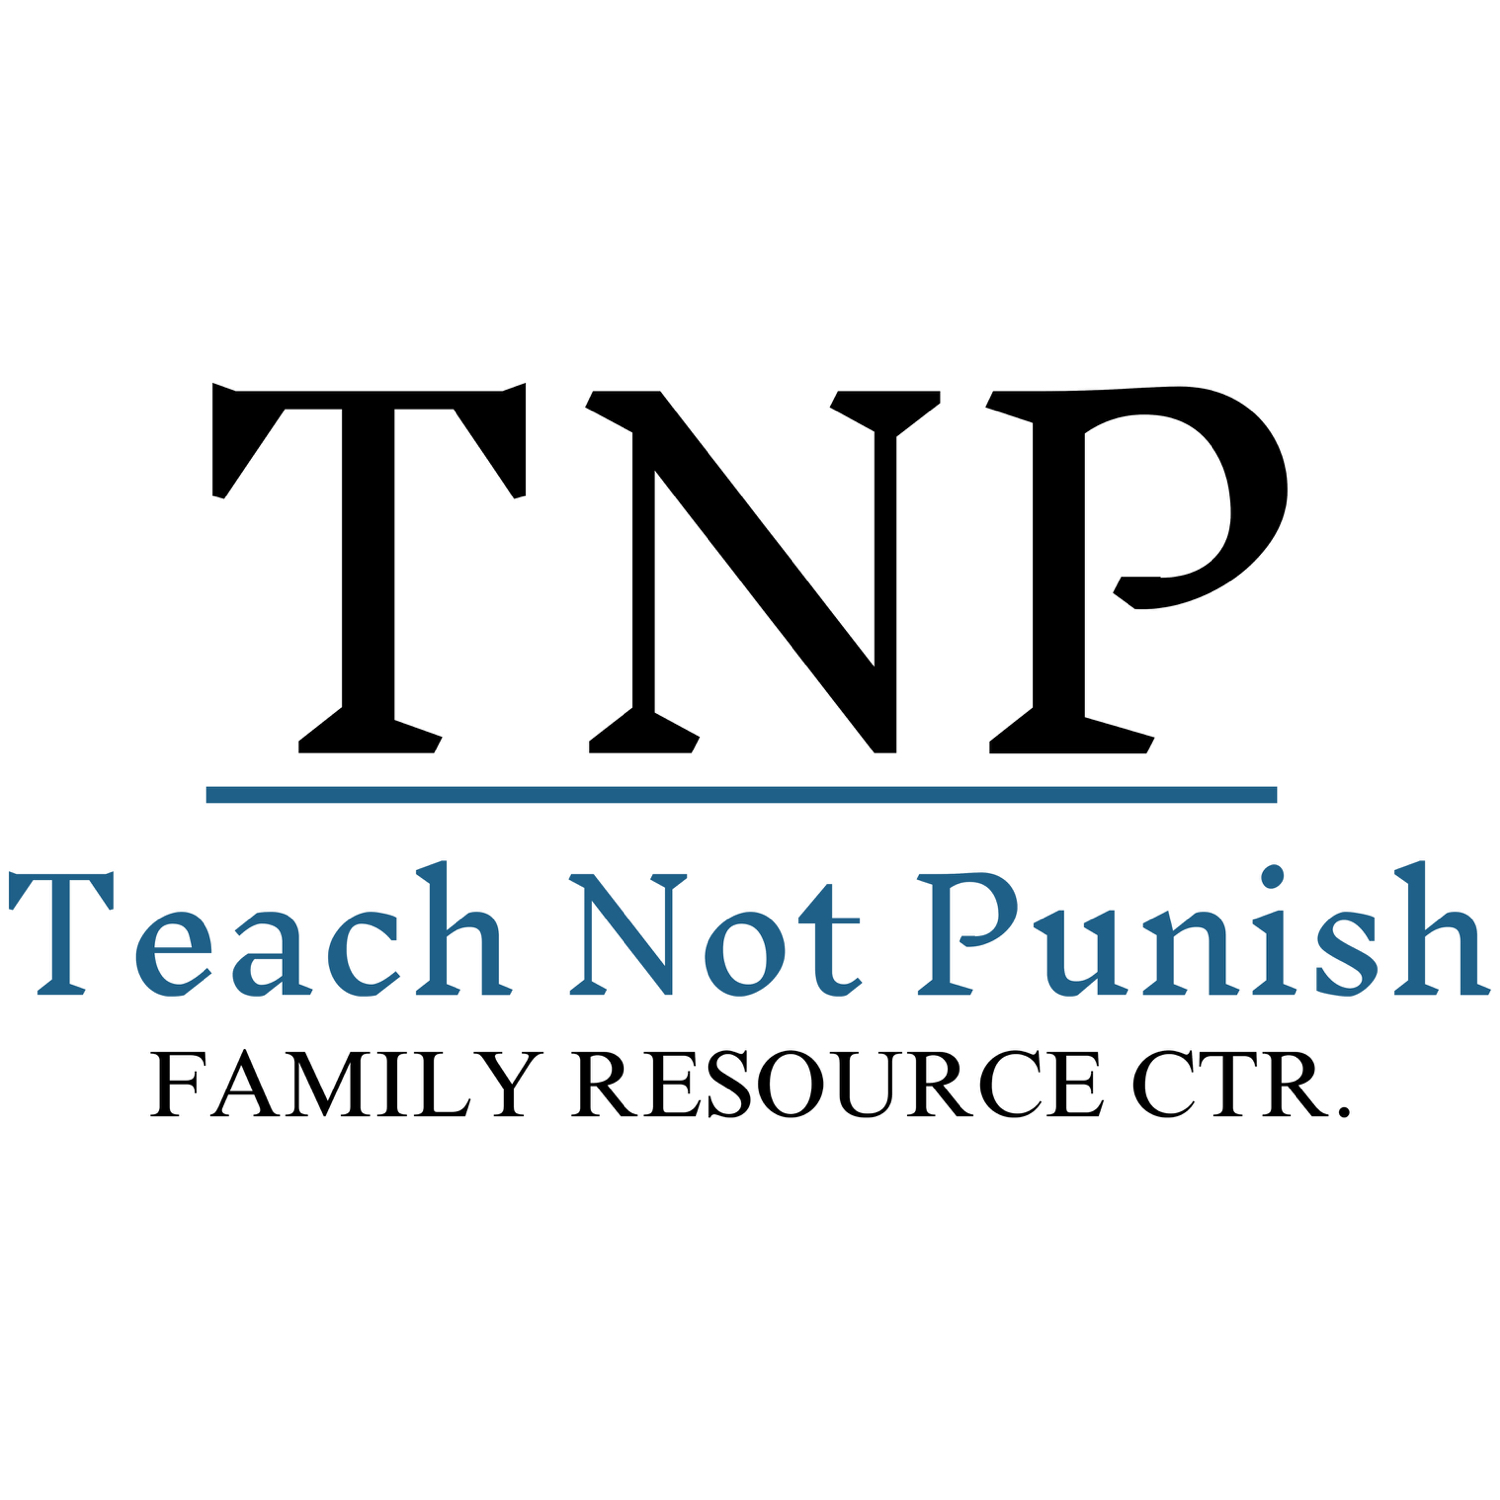 Teach Not Punish   The Teach Not Punish Family Resource Center mission is to empower families by enhancing access to community resources and providing resources to build resilience during adverse times to positively impact family function. We focus on supporting educators by providing academic interventions and positive preventative behavioral interventions to empower behaviorally challenged children to shape their behavior to enhance academic success.